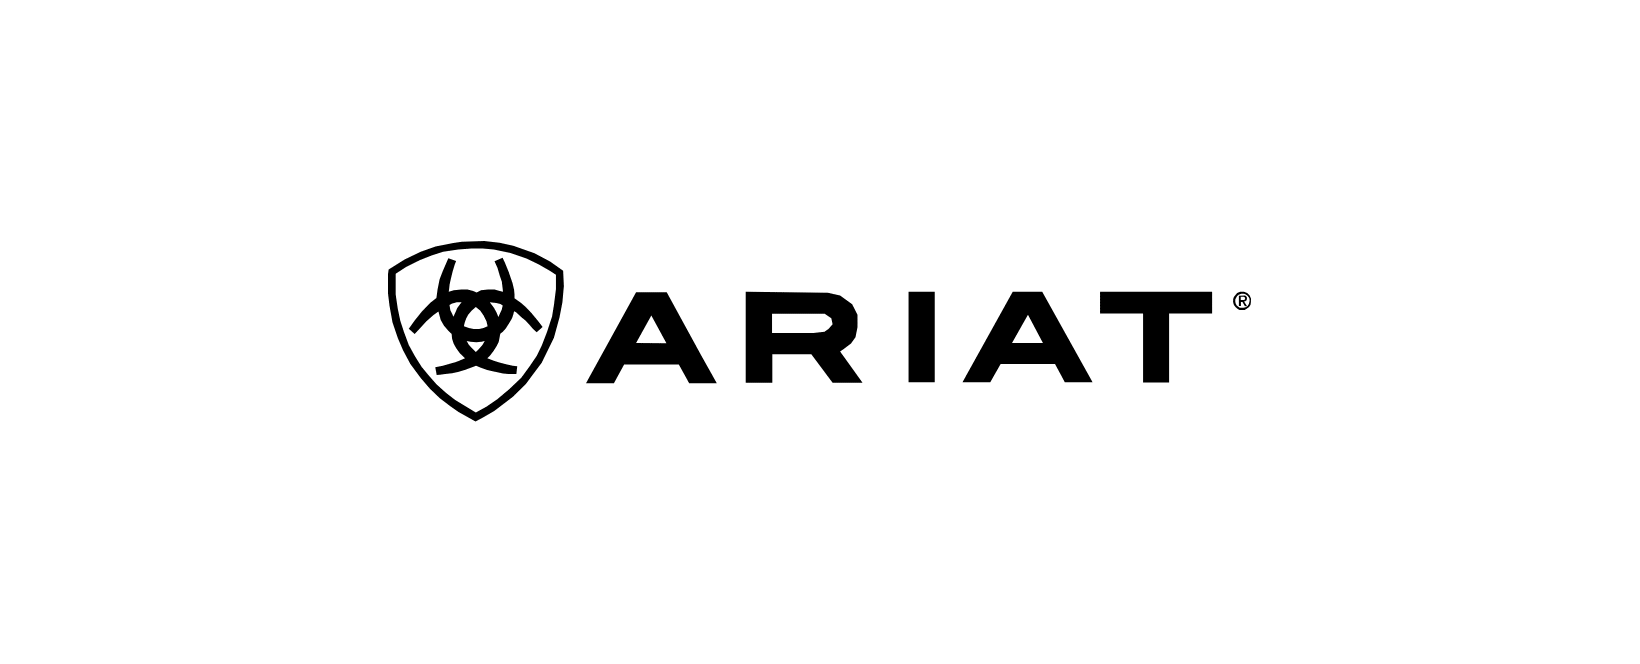 Ariat Review – Boots & Apparel